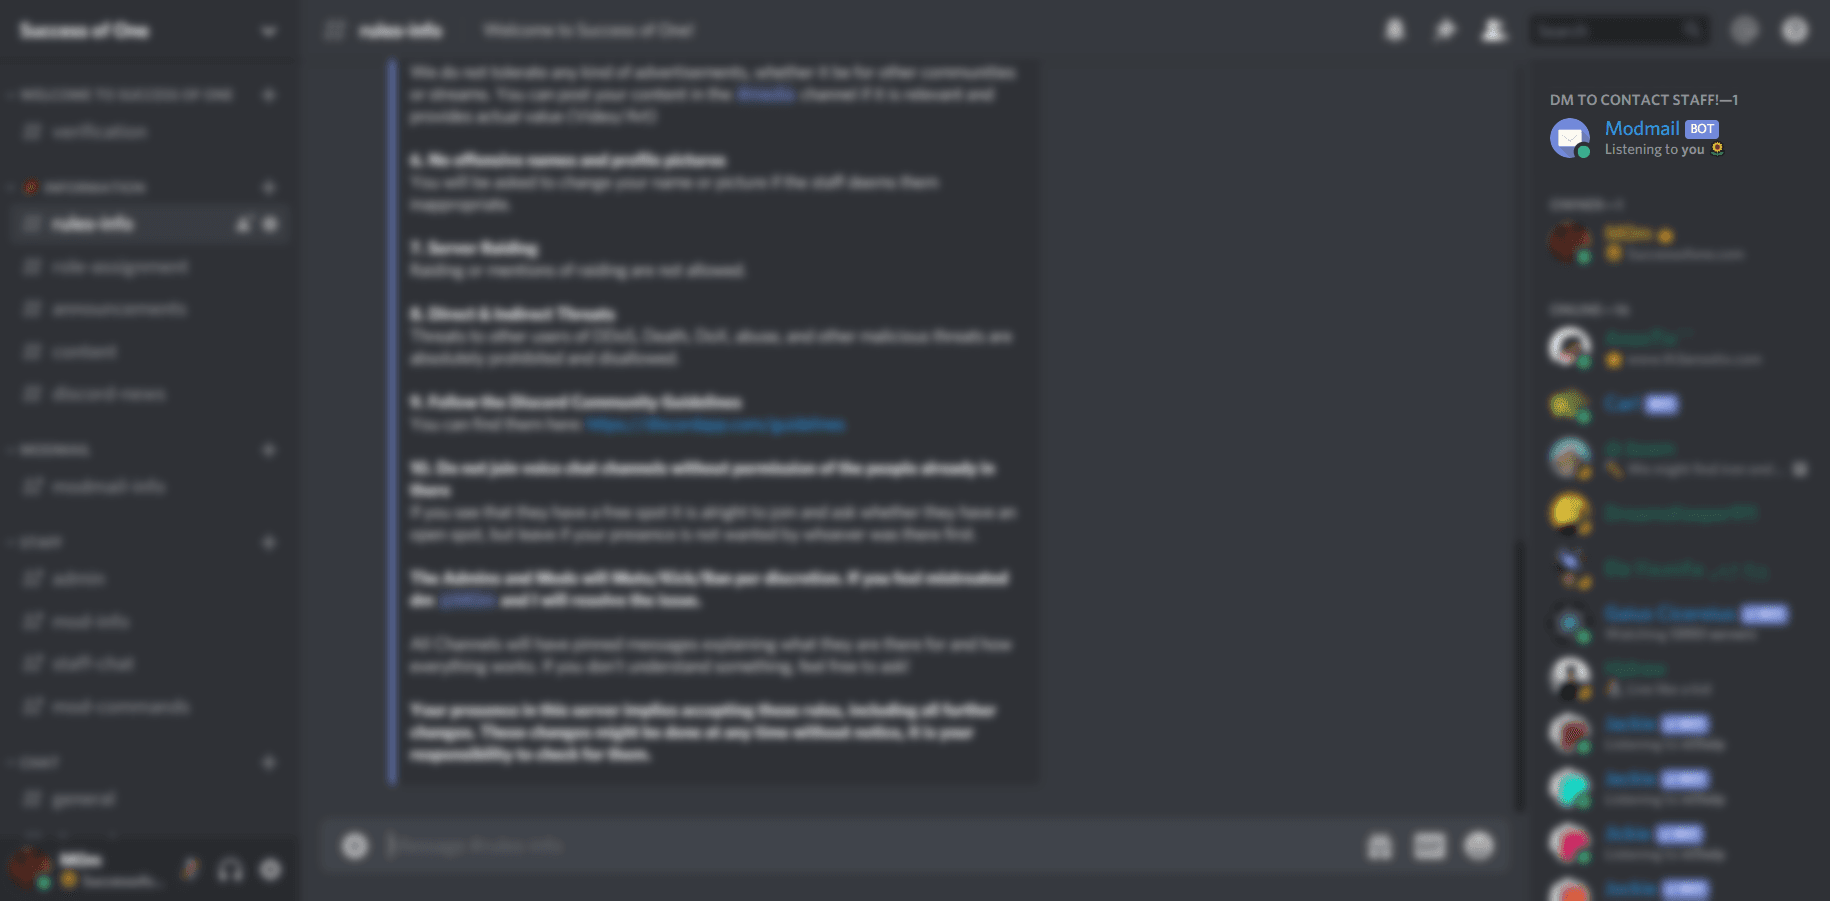 Image of what the Modmail looks like in your Server Sidebar